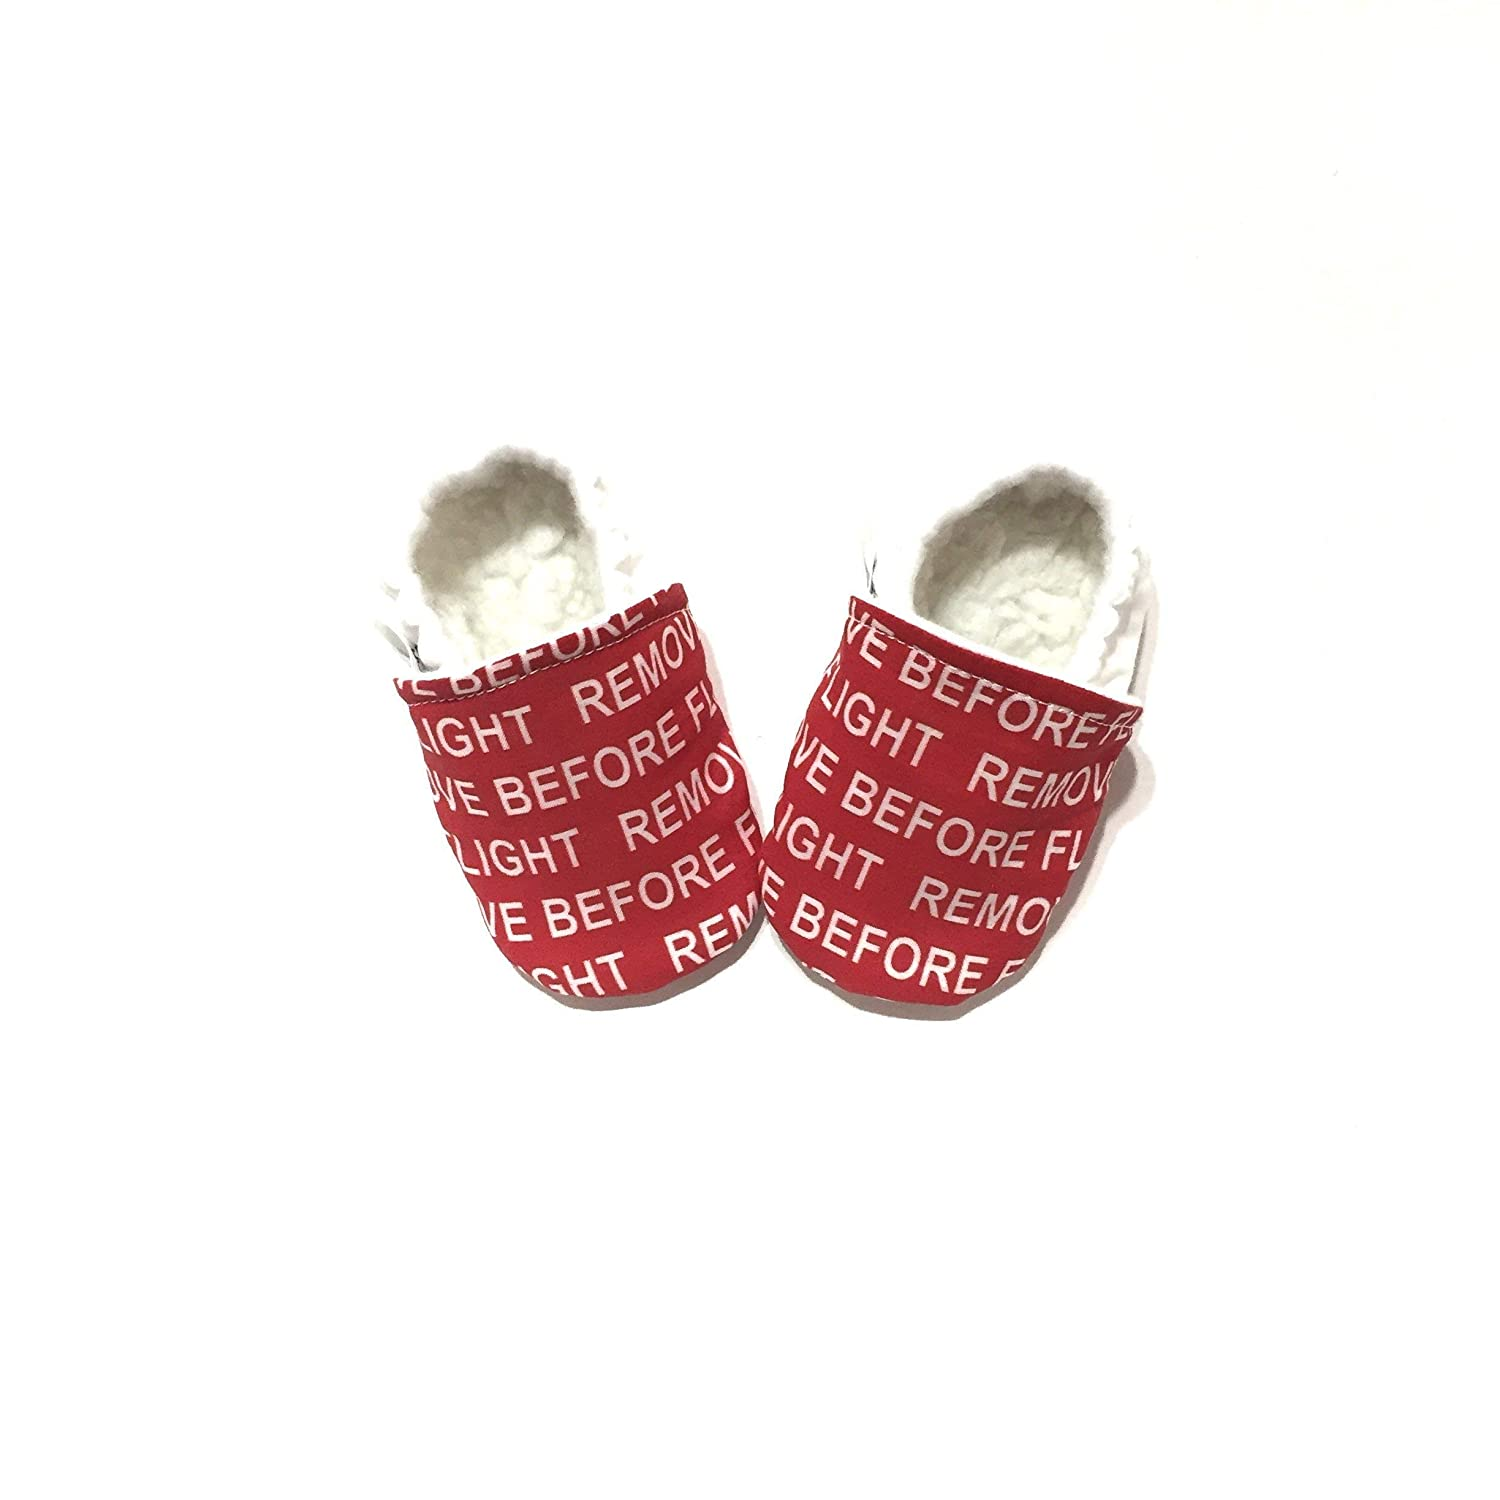 REMOVE BEFORE FLIGHT Pilot Shoes lowest price Airplane Air Baby Over item handling